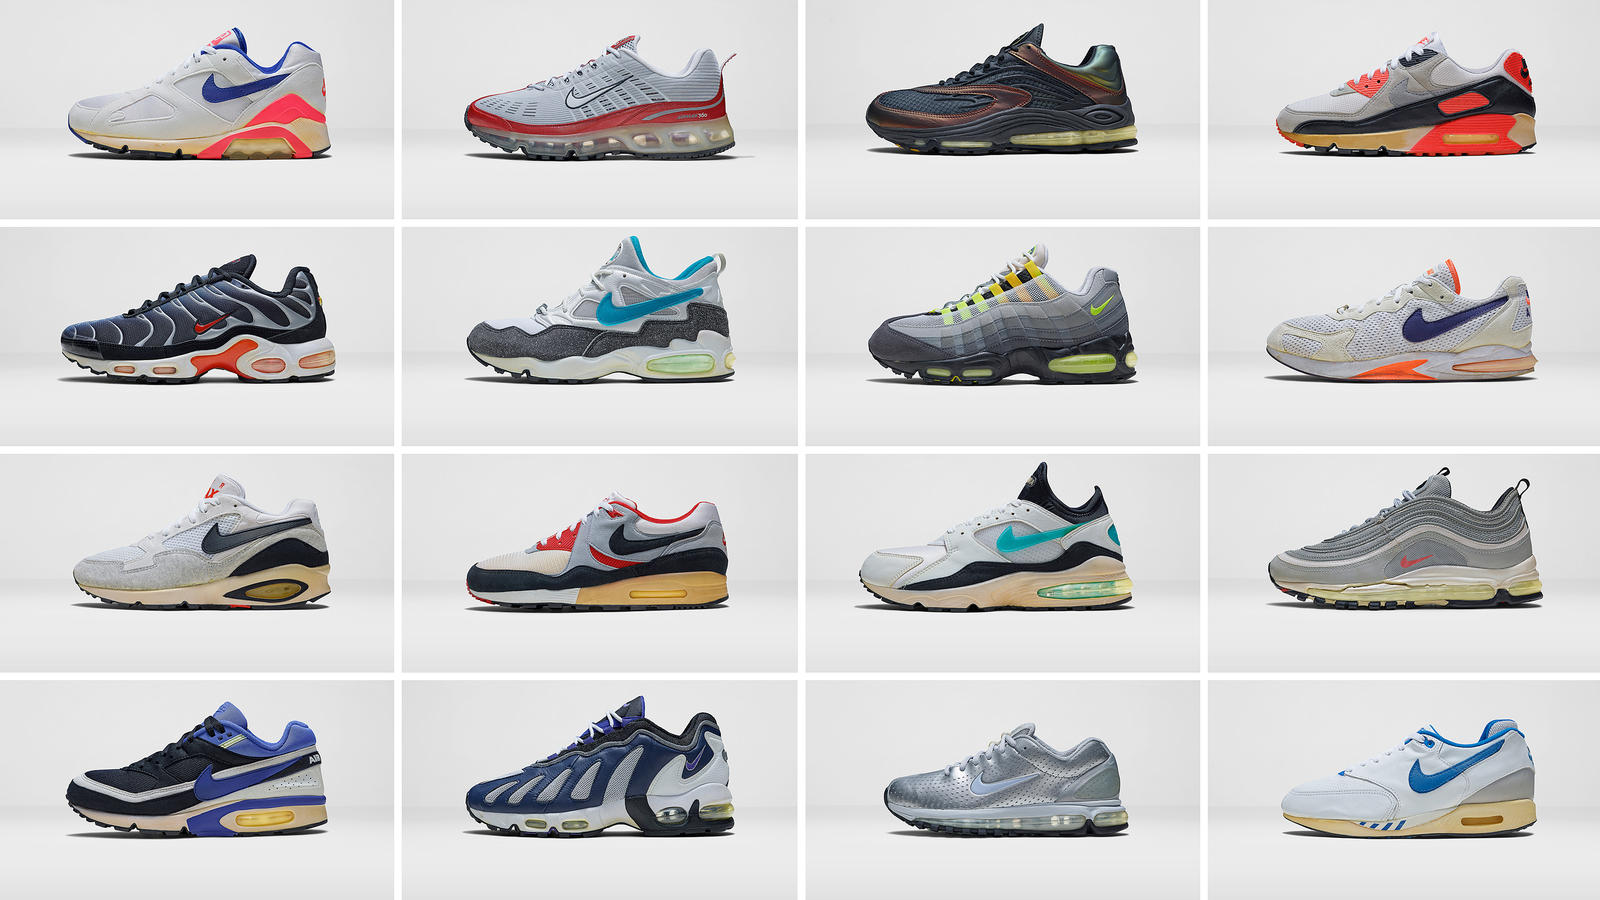 c63b8d47d751 Nike-Air-Max-DNA-Image-Grid-Large